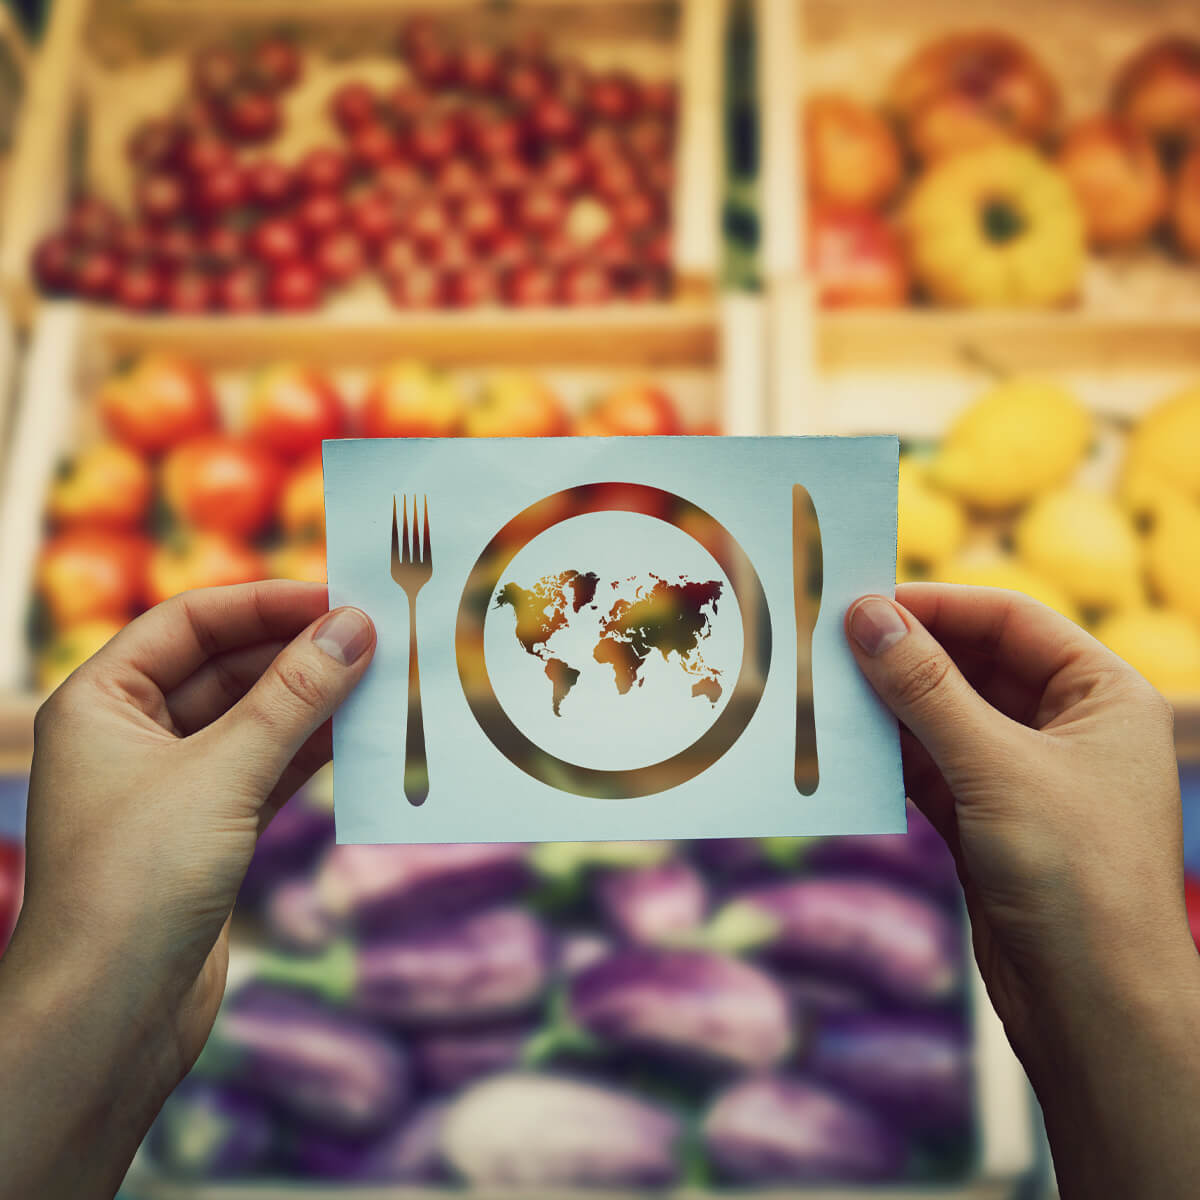 Plant-based food systems promise hope for people and planet